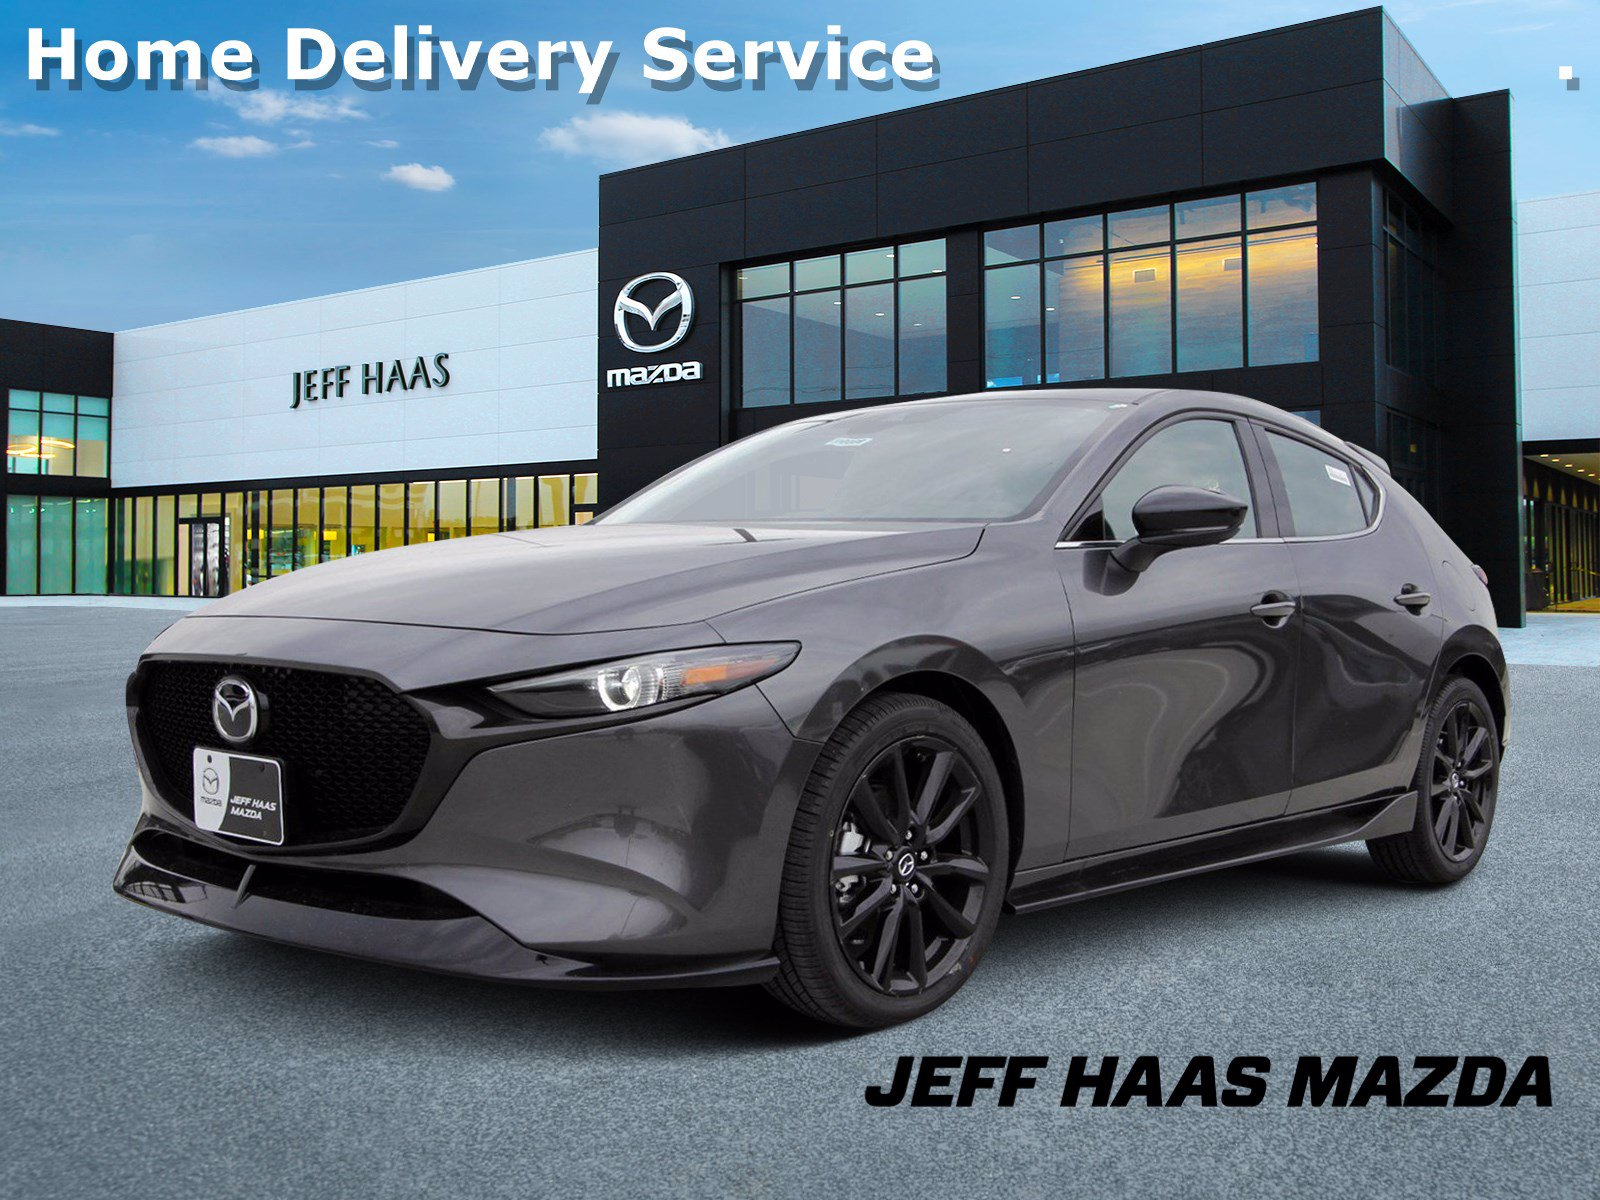 New 2020 Mazda3 Hatchback FWD Manual w/Premium Pkg